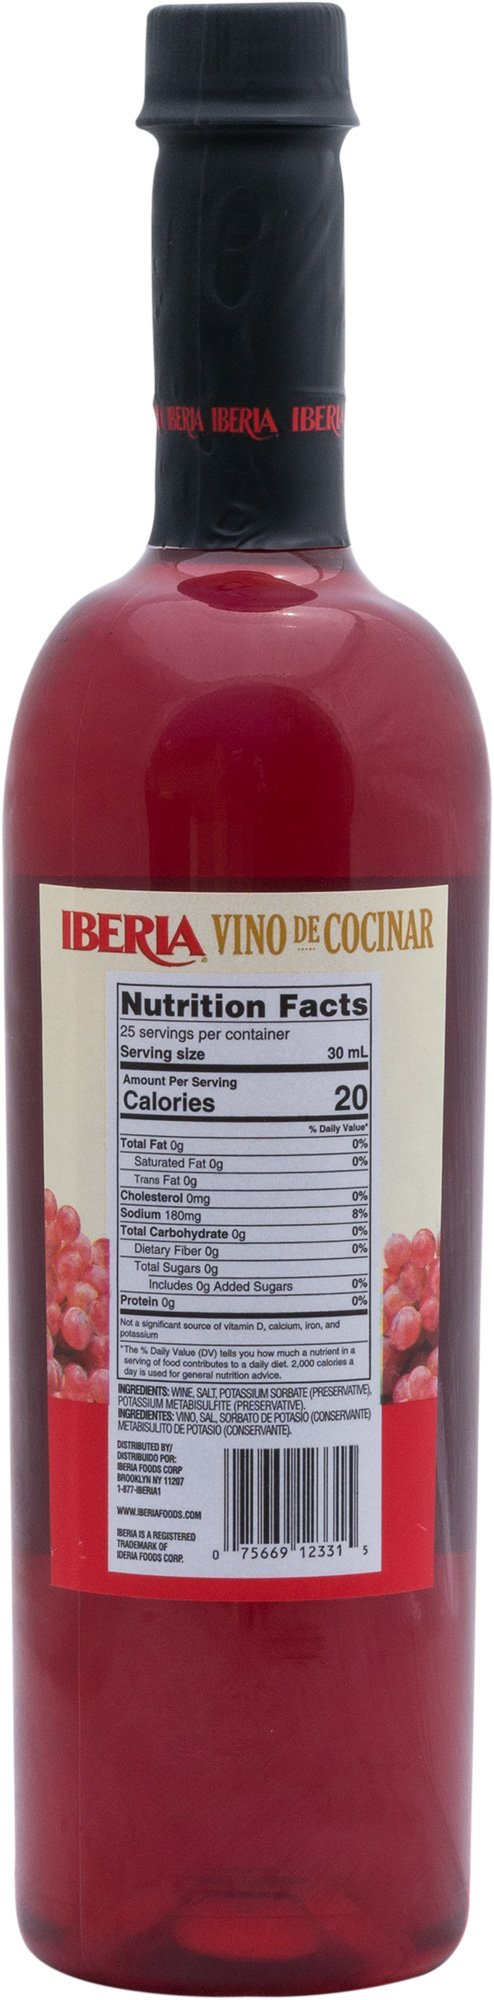 Iberia Red Cooking Wine 25.4 fl. oz, Exclusively for Cooking, Full-Strength Wine That Enhance the Flavor of Almost Any Dish by Iberia (Image #2)